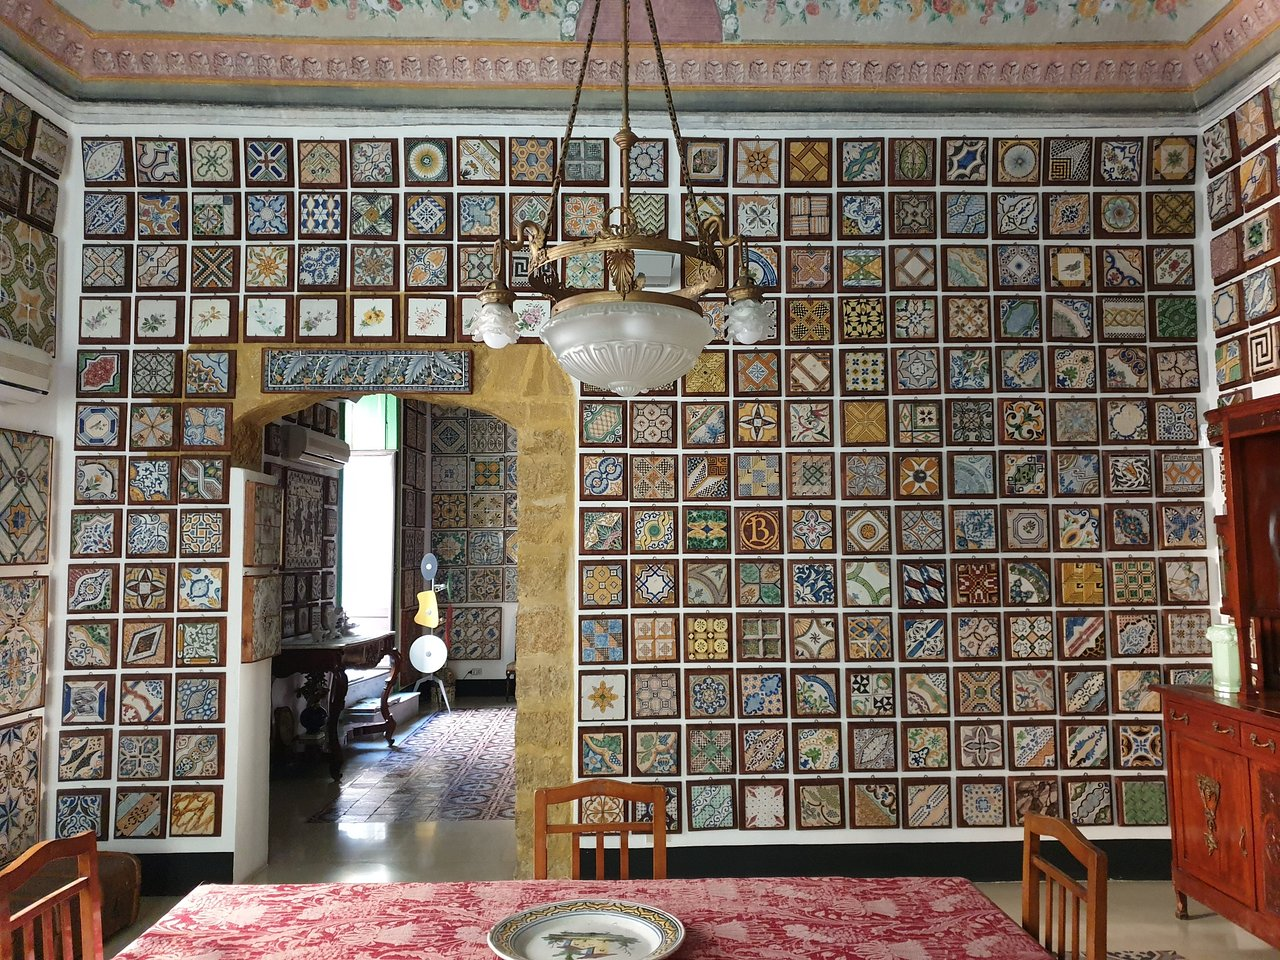 Studio La Rosa Palermo museum of tiles stanze al genio (palermo) - 2020 all you